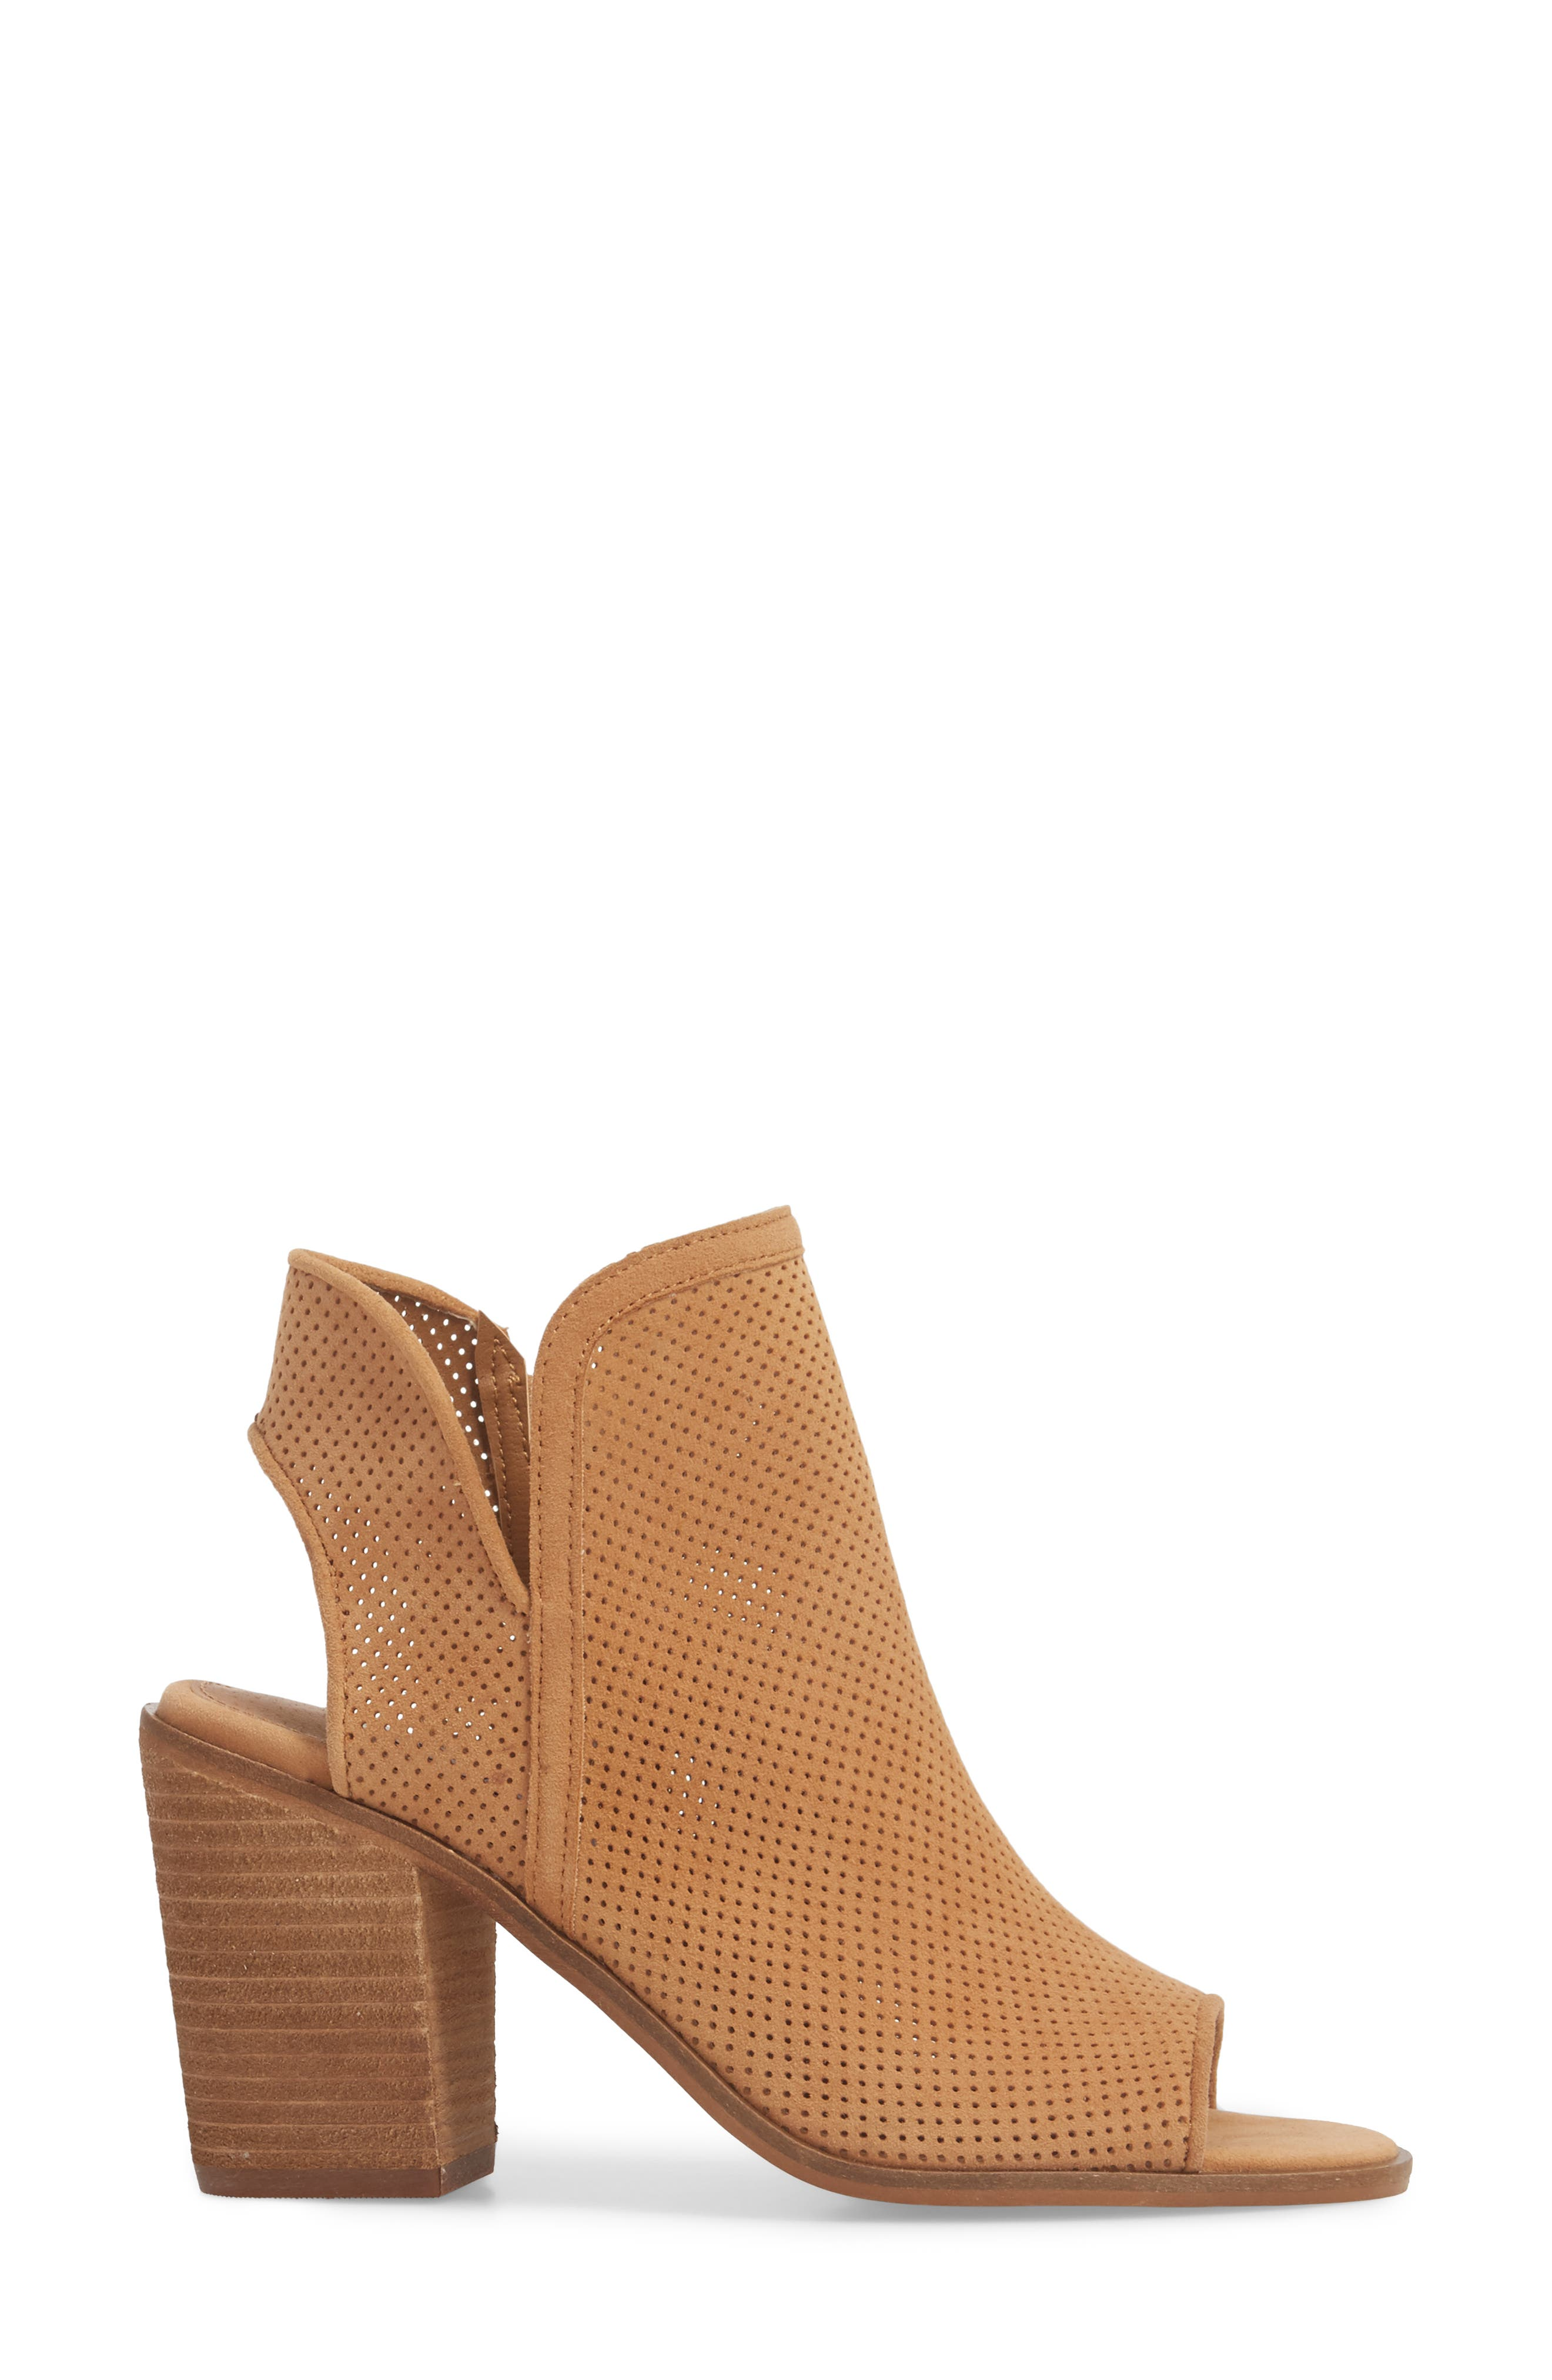 Maxine Perforated Bootie,                             Alternate thumbnail 3, color,                             Cognac Suede